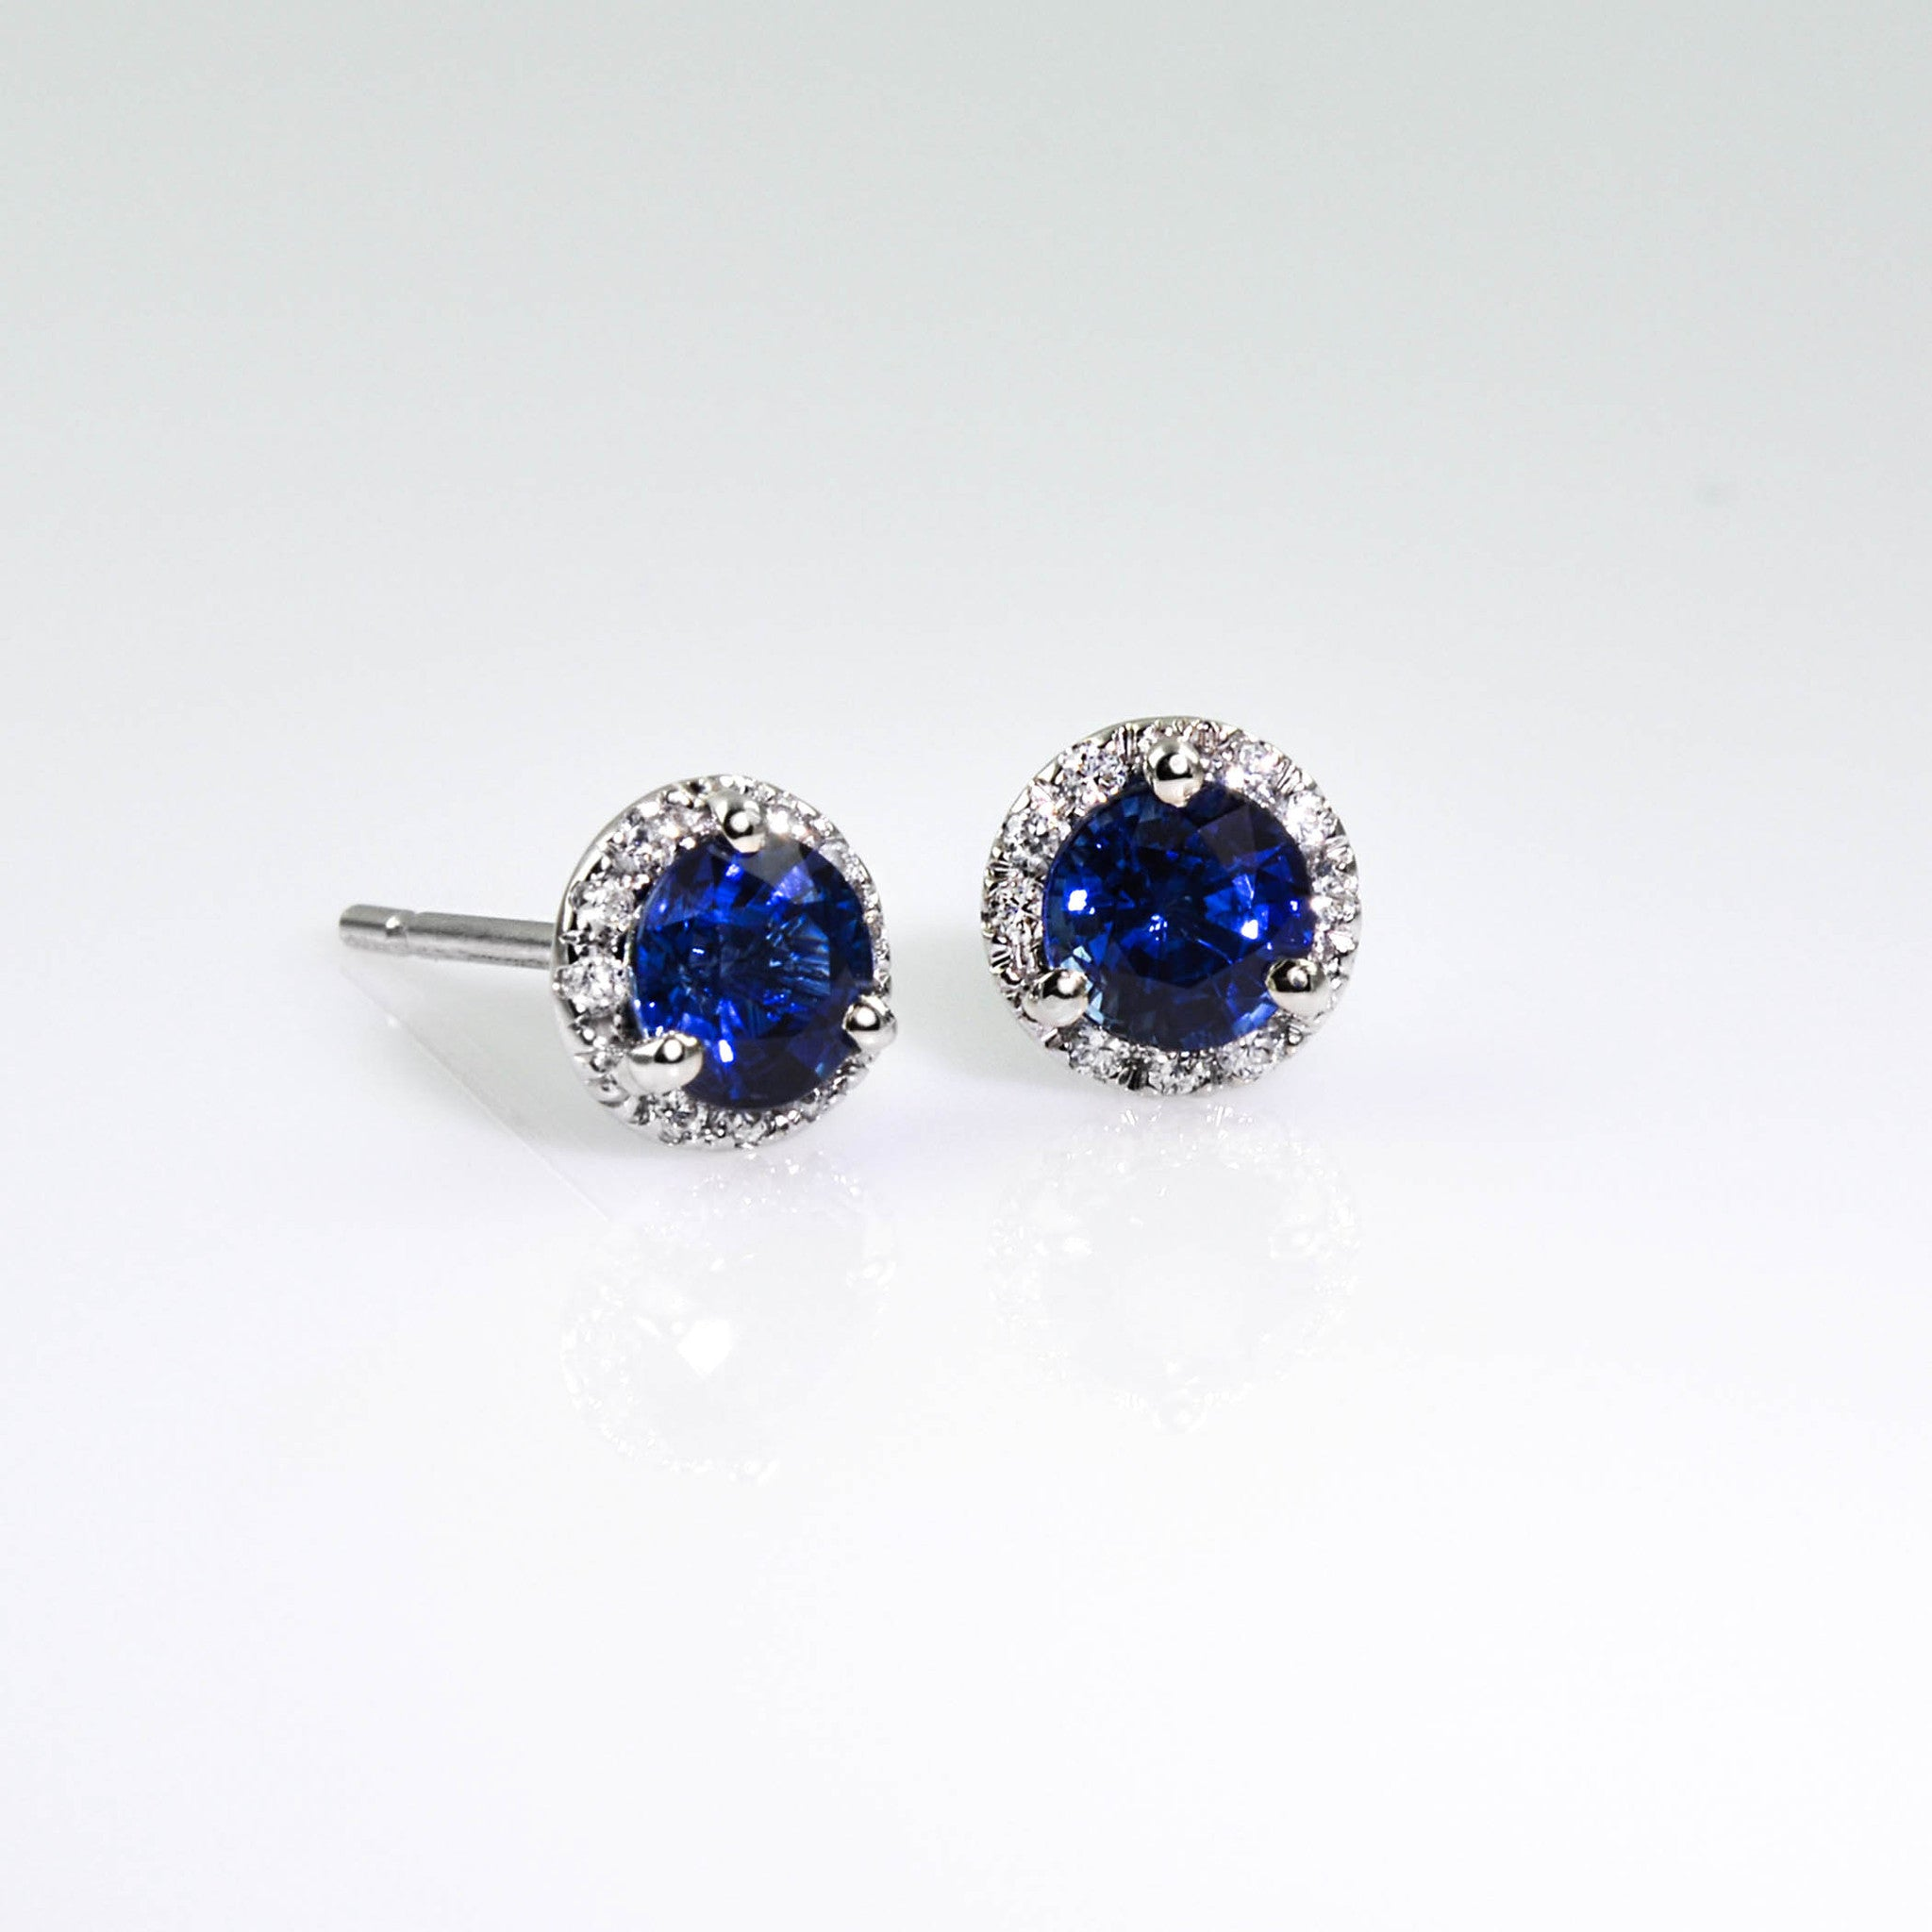 earrings diamond at button for in jewelry big j platinum stud id org cartier pearl sale img